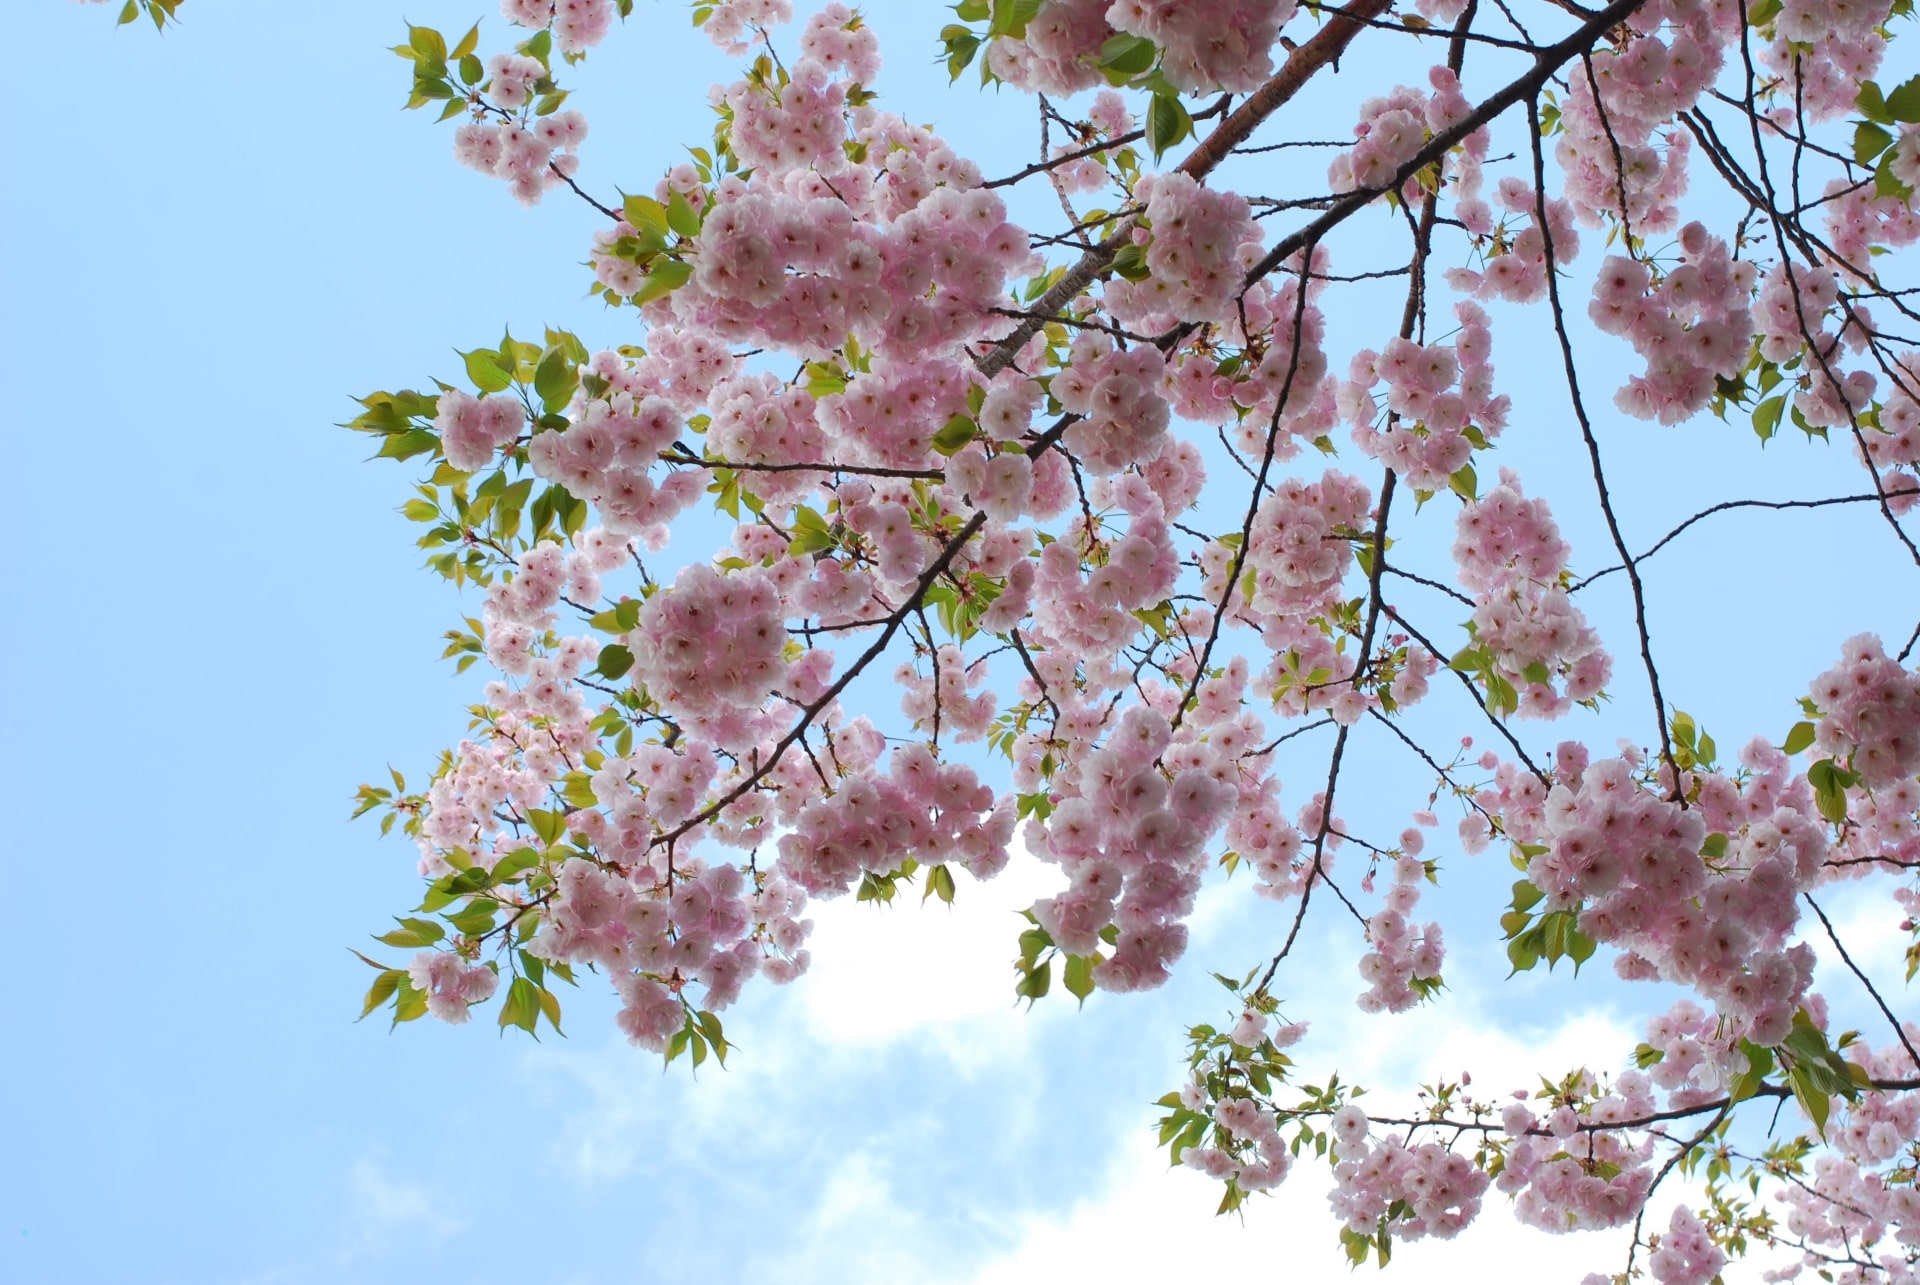 Beautiful contrast between cherry blossoms and the blue sky